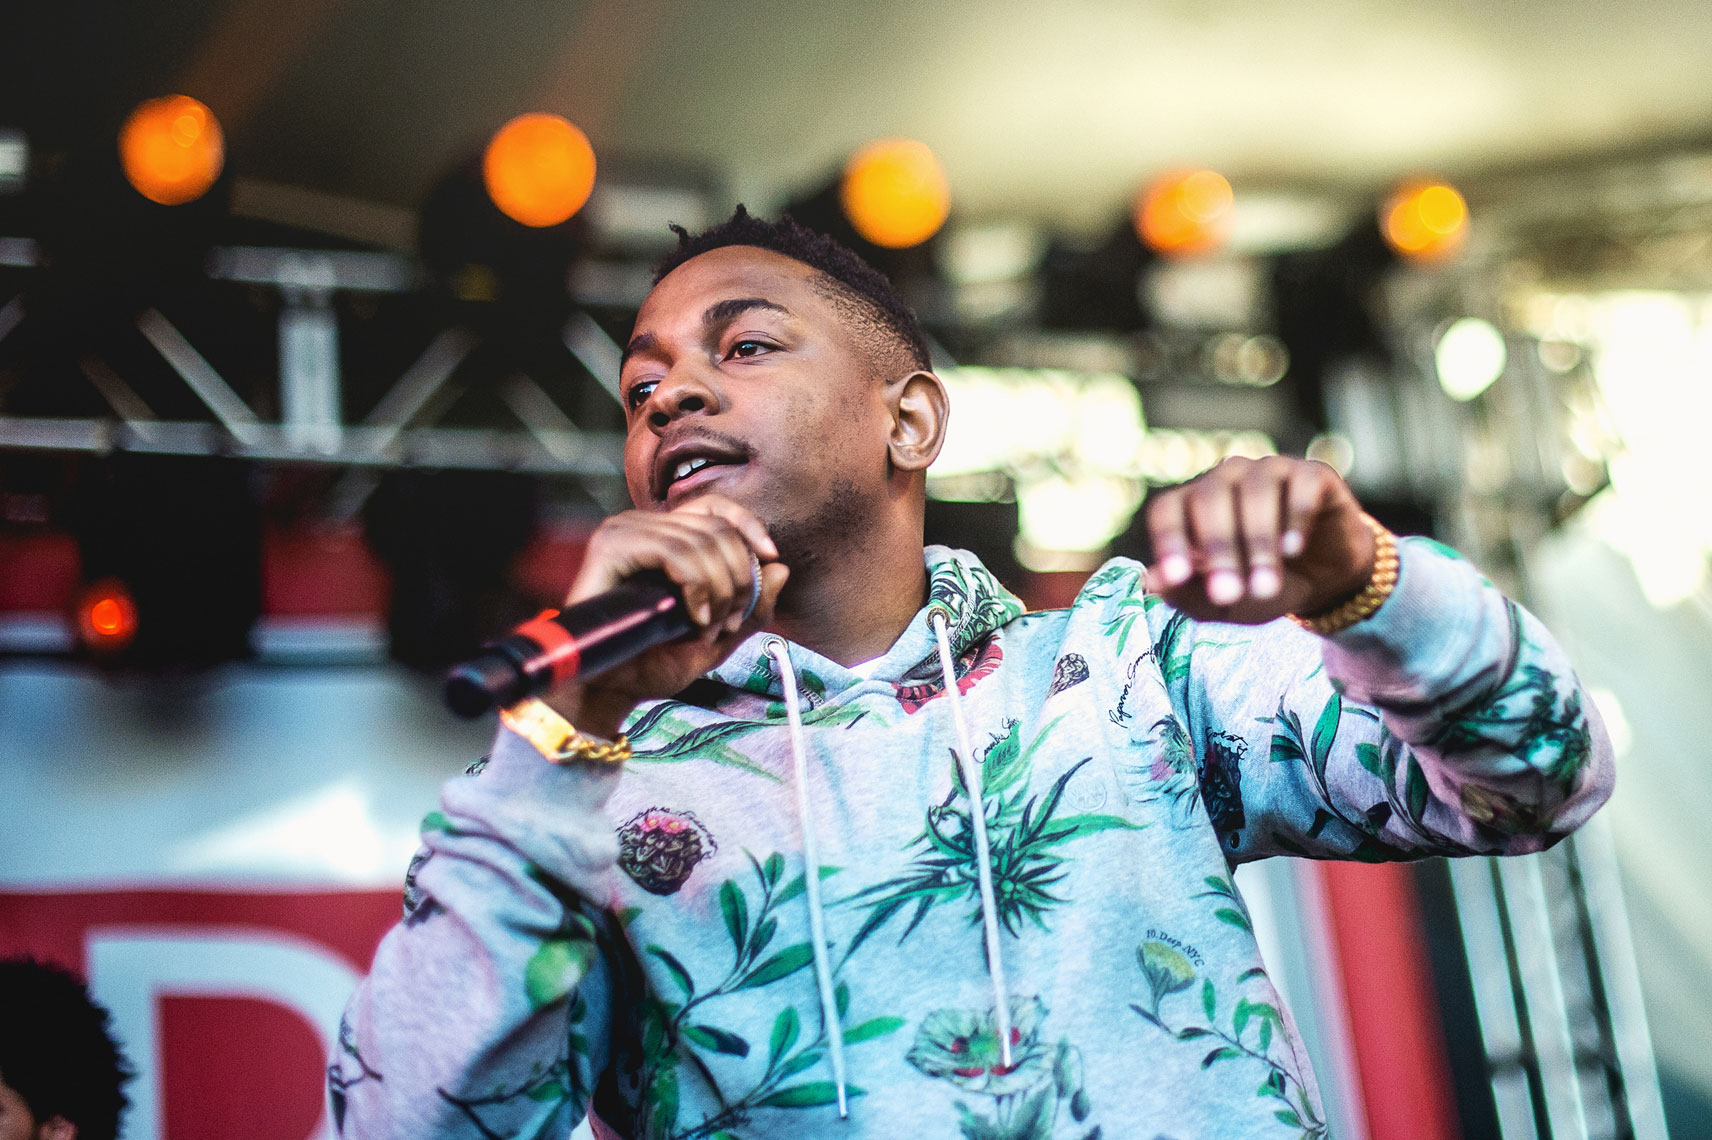 Kendrick Lamar at SXSW